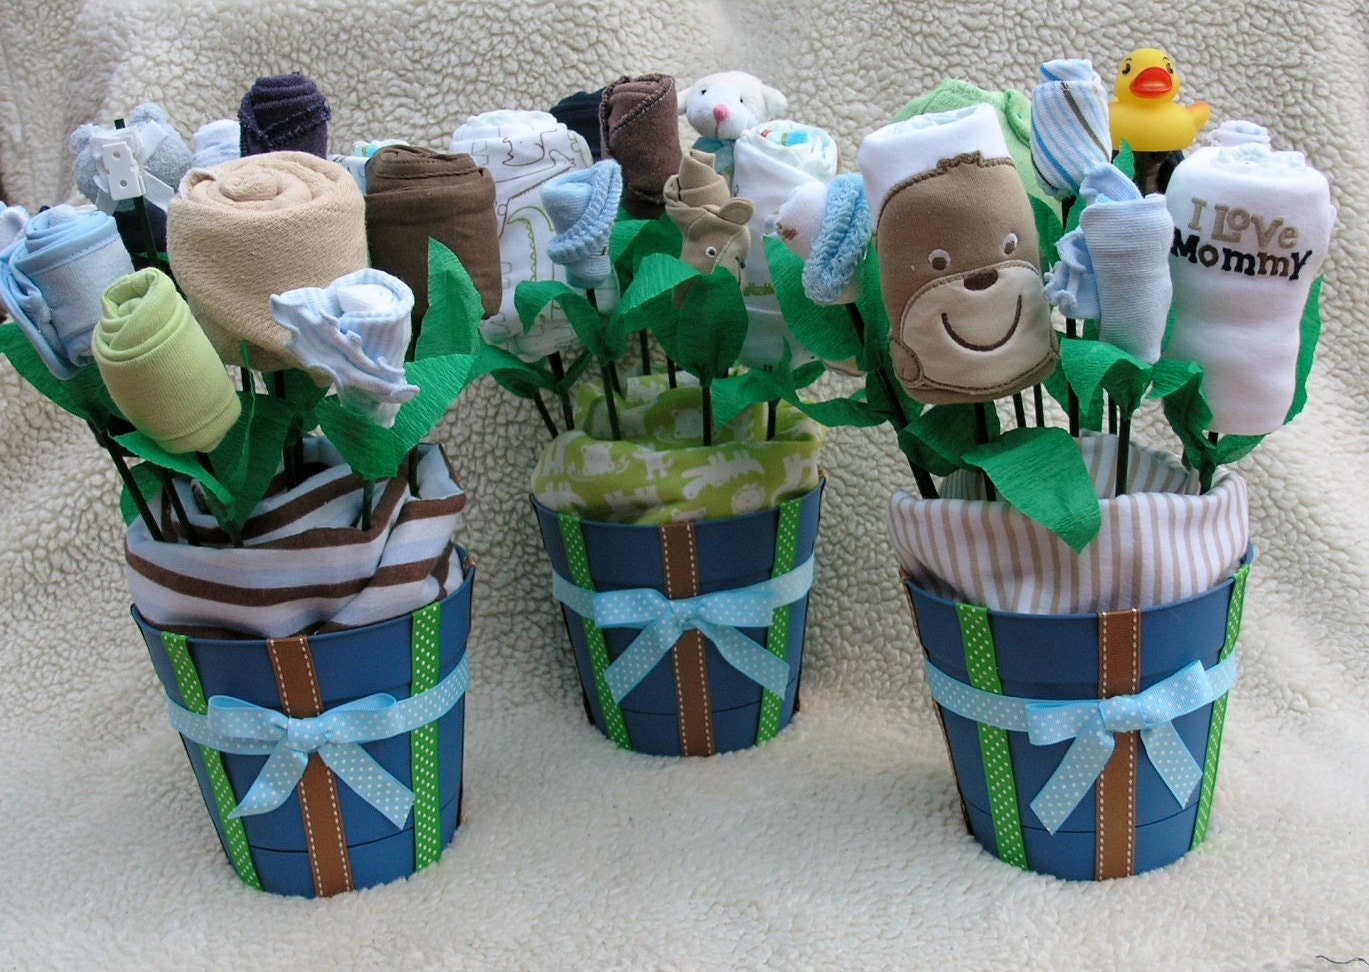 Duck baby shower on pinterest rubber duck baby boy for Baby shower decoration ideas for boys